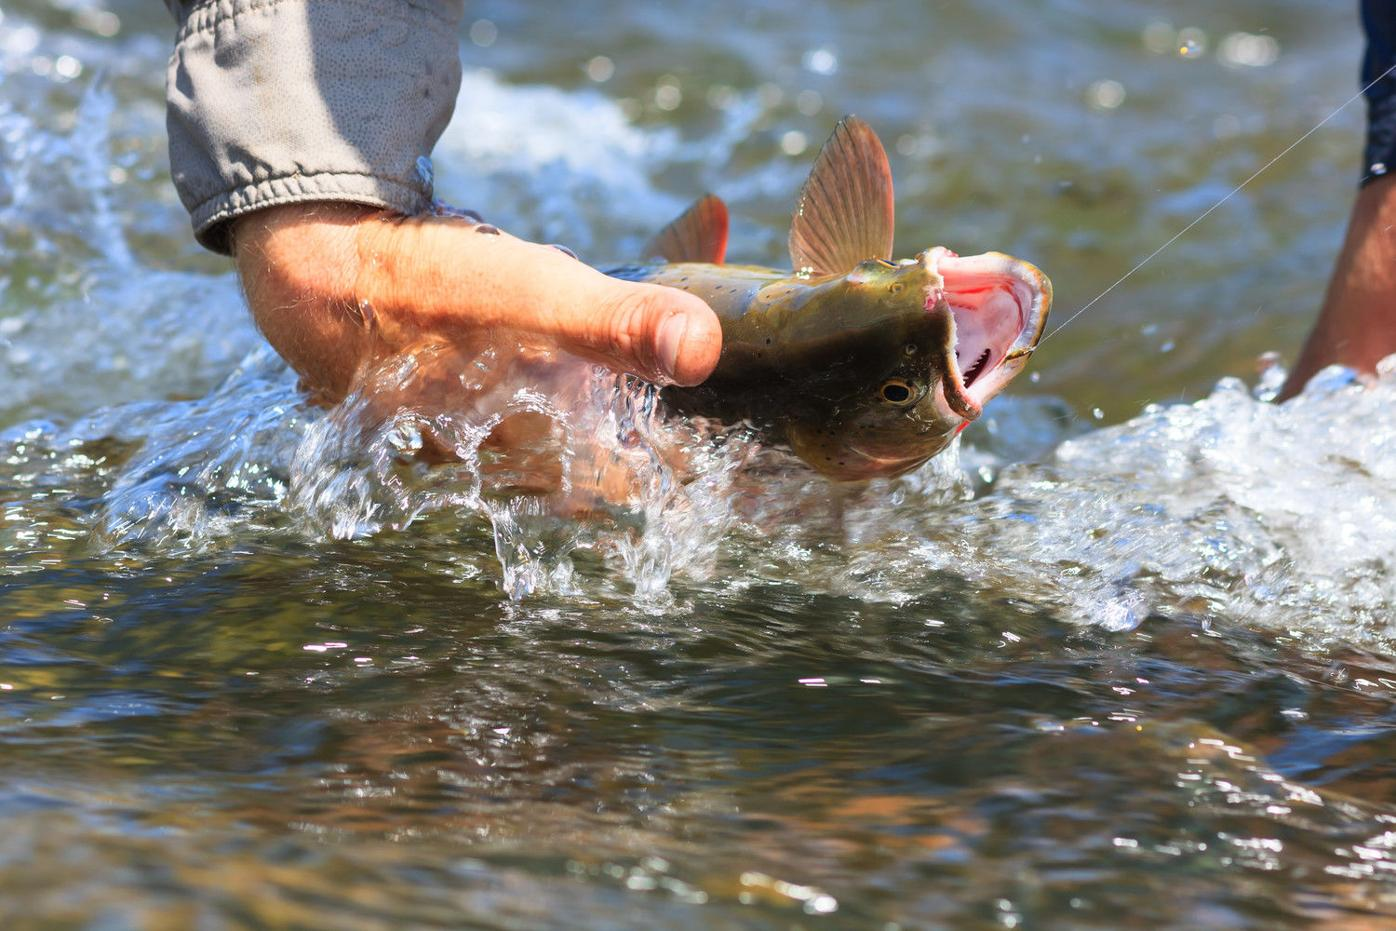 Voluntary fishing restrictions will help fish make it through a tough year